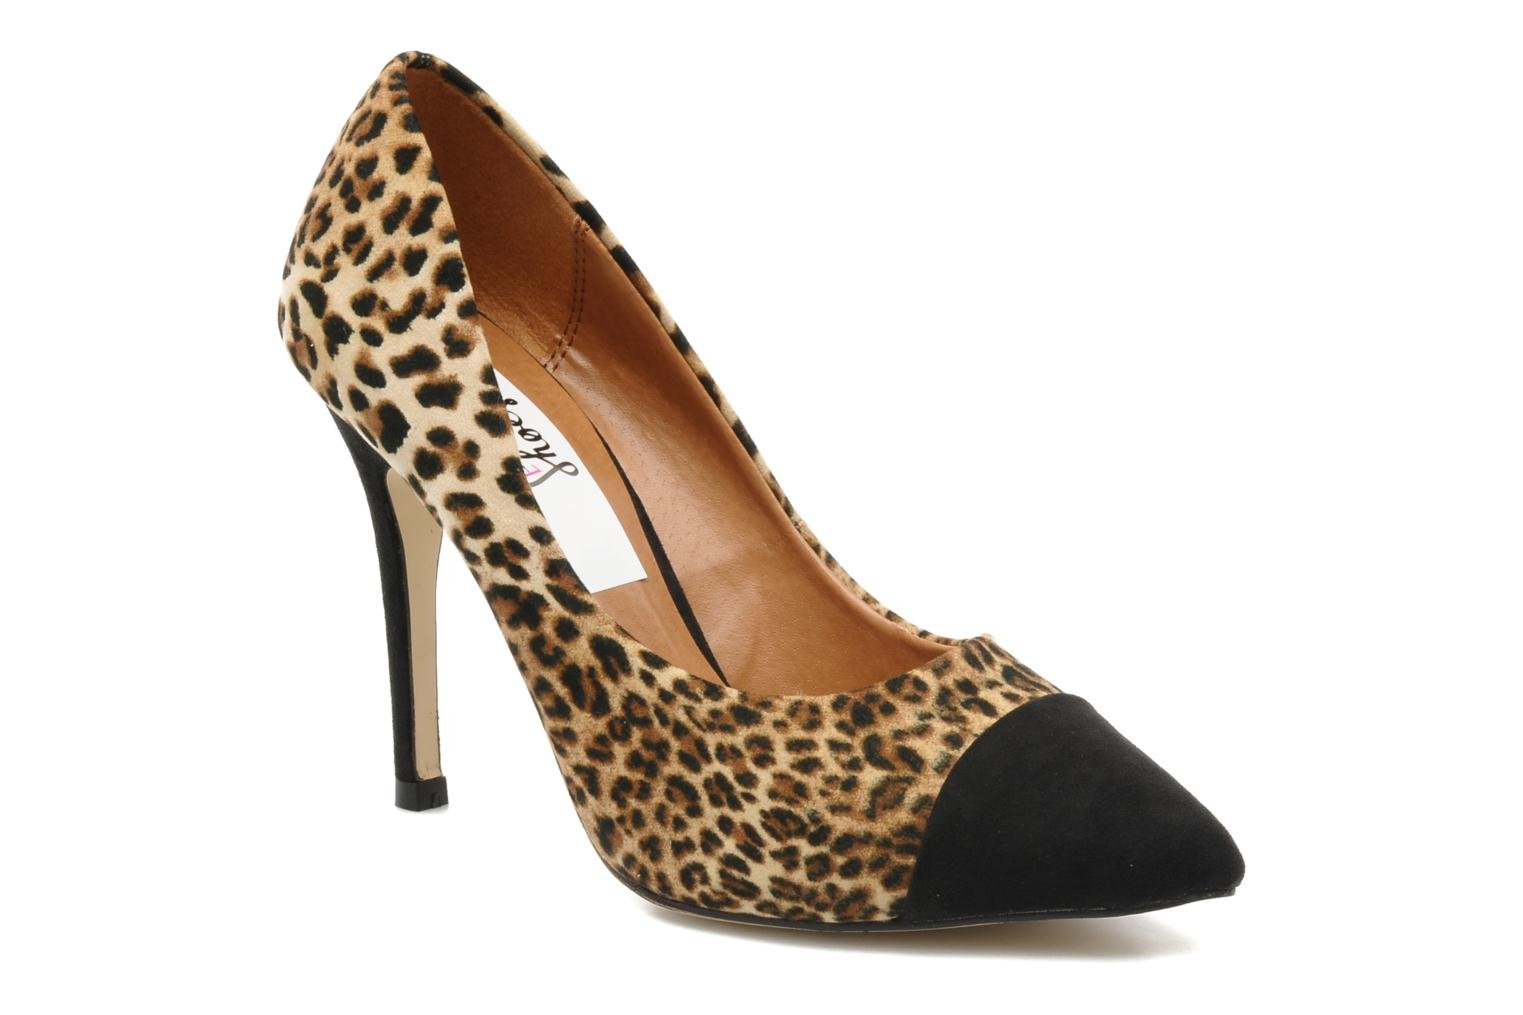 Nermina LEOPARD MICRO WITH BLACK TOE/HEEL